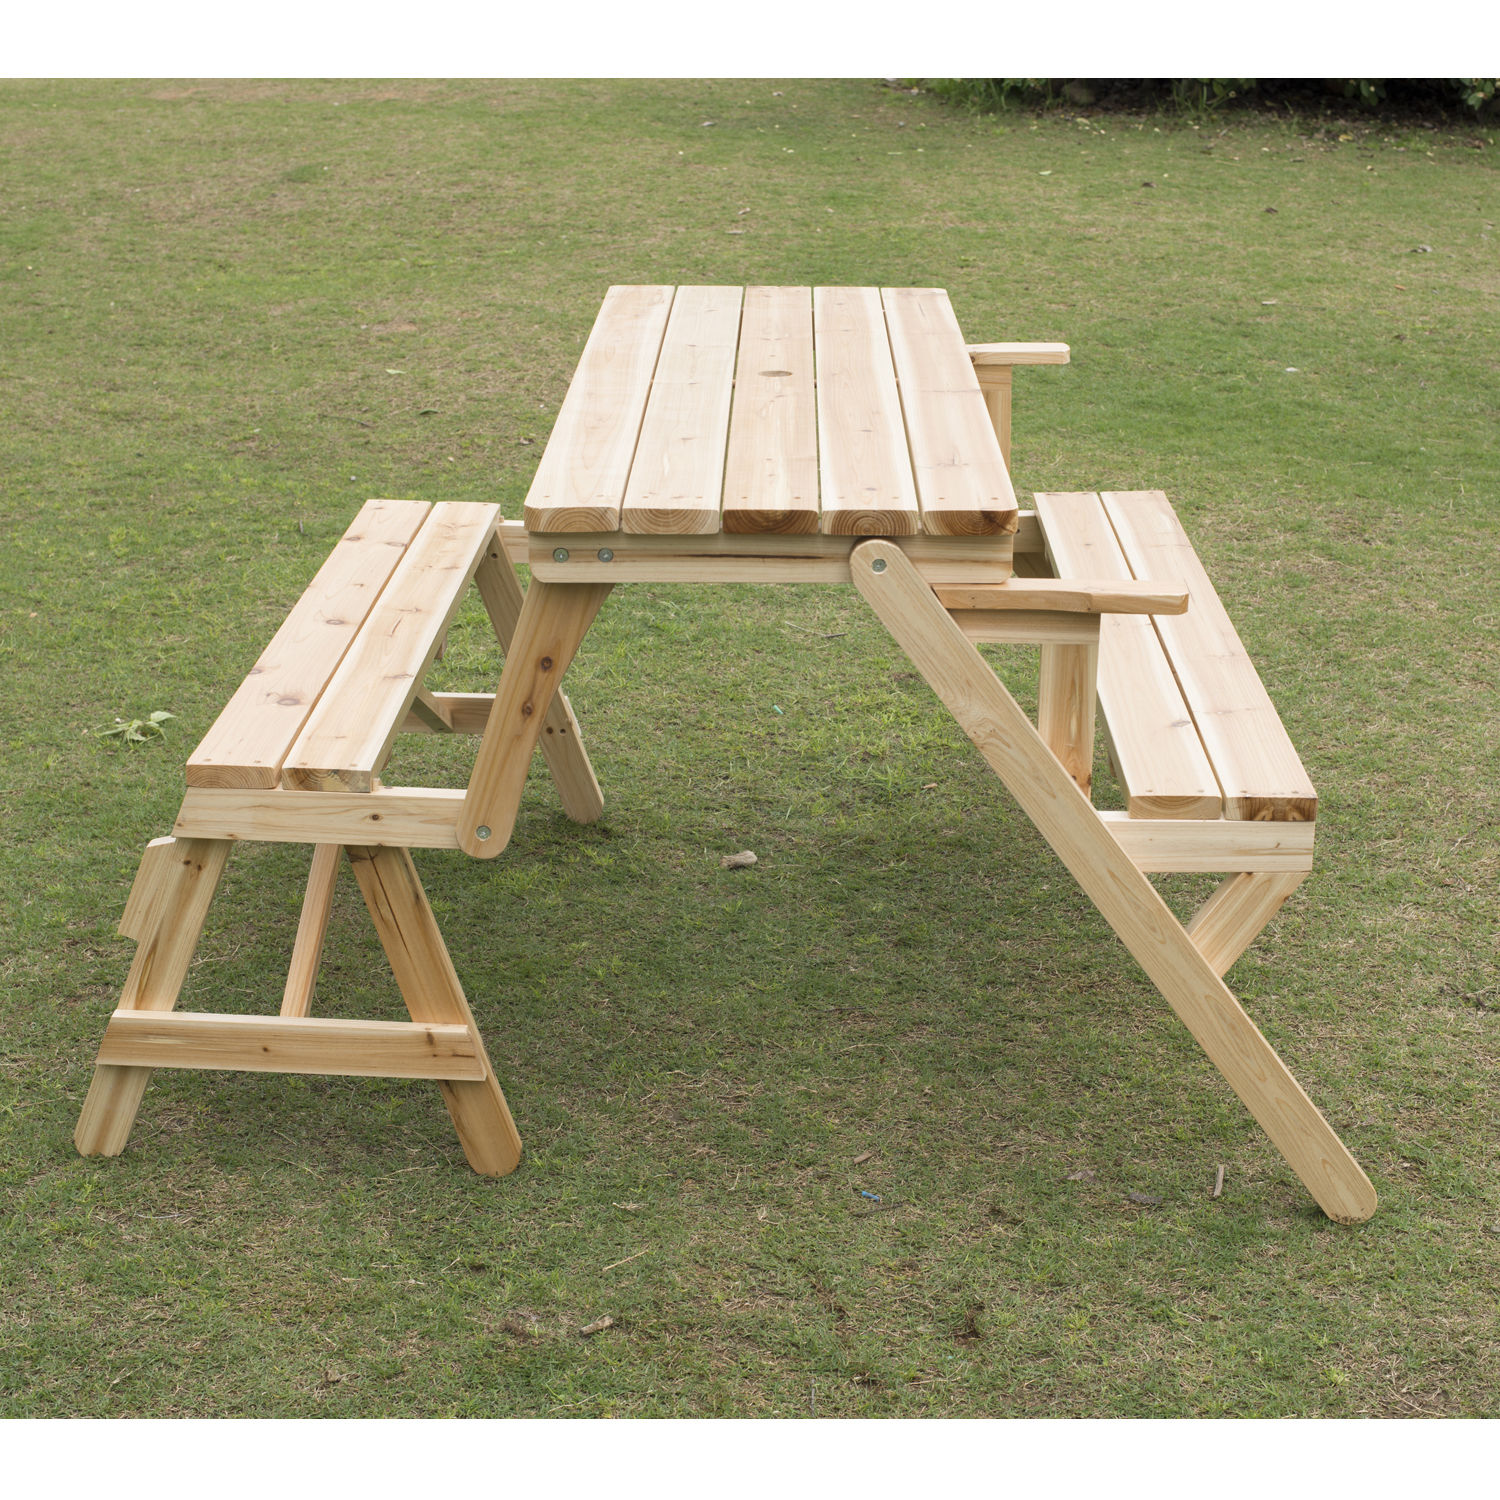 Strange Details About Outsunny Patio 2 In 1 Outdoor Interchangeable Picnic Table Garden Bench Wood Ibusinesslaw Wood Chair Design Ideas Ibusinesslaworg